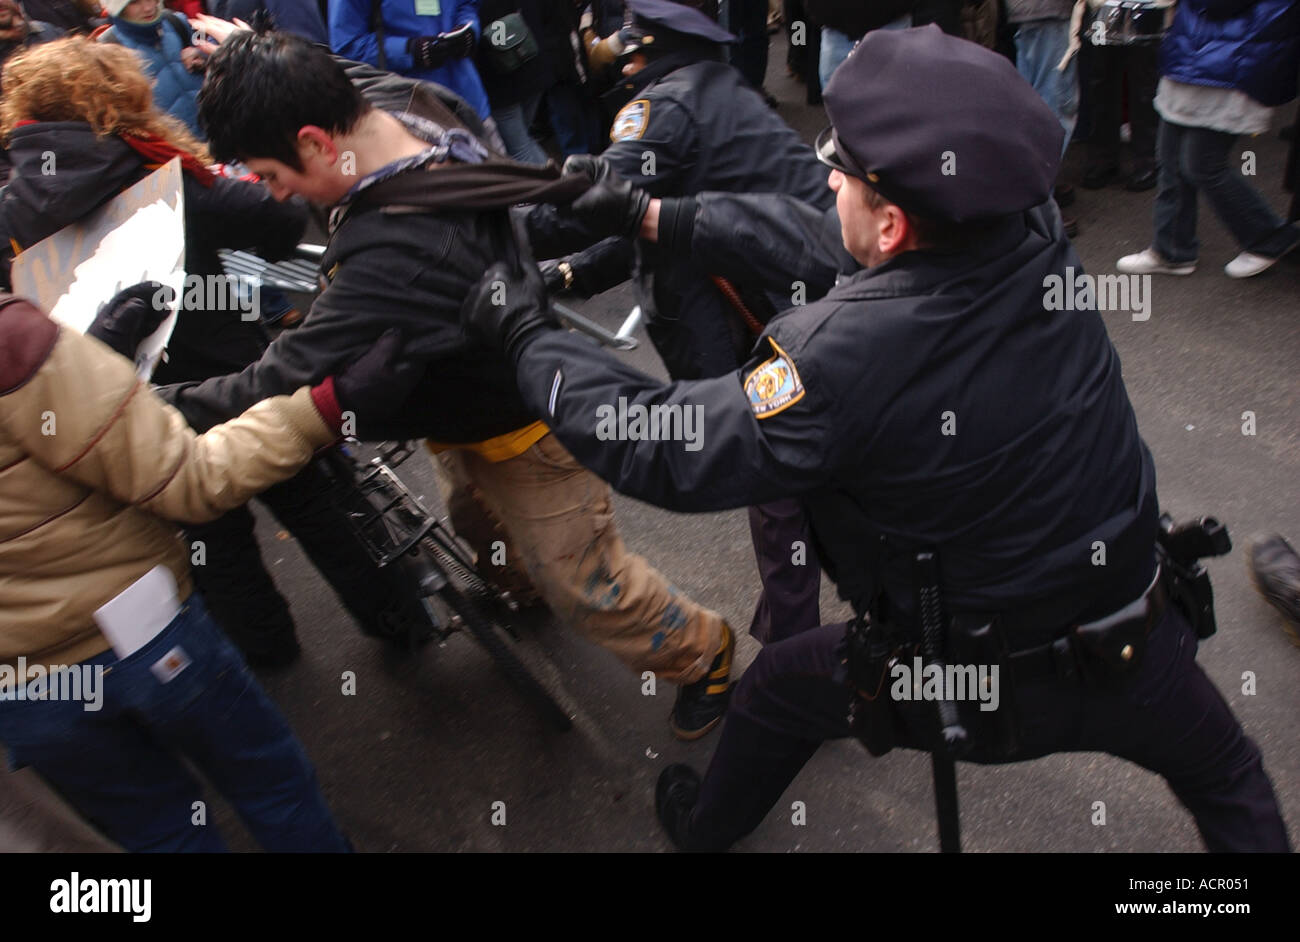 Police officer arresting protester during anti war protests in New York City at start of Iraq War - Stock Image